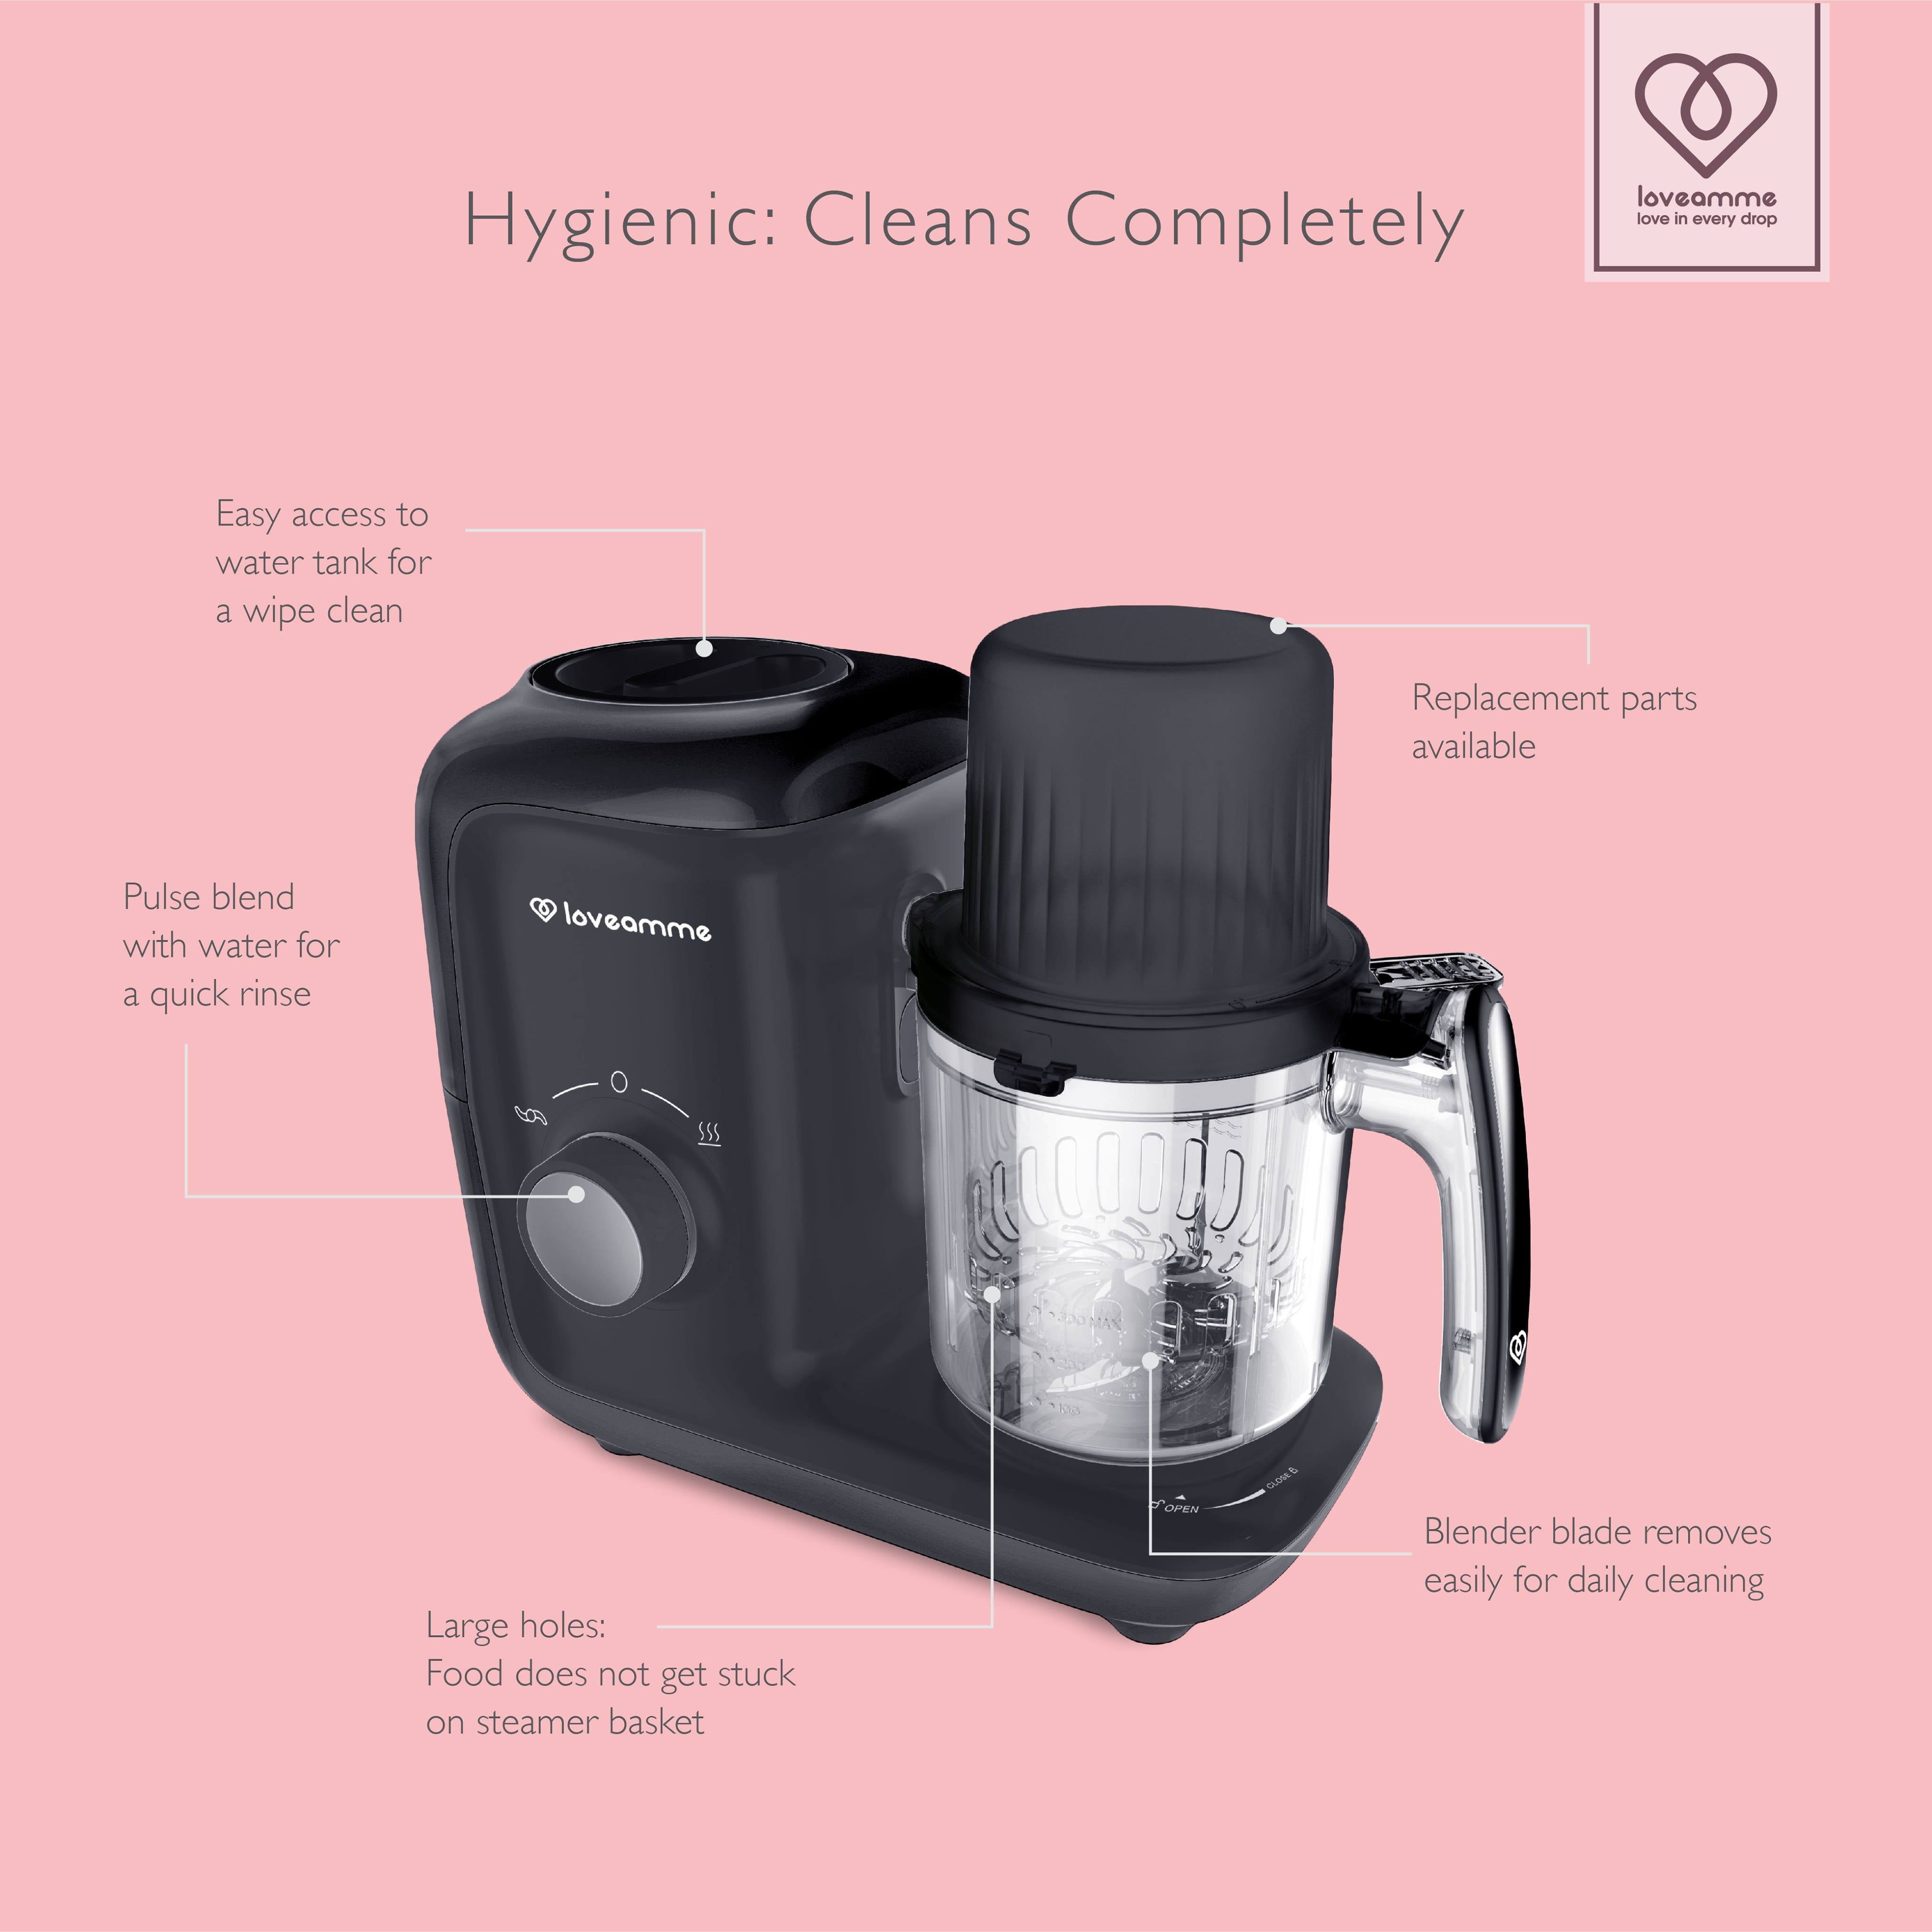 LoveAmme LoveCook Mate food processor with its spare parts and how to clean